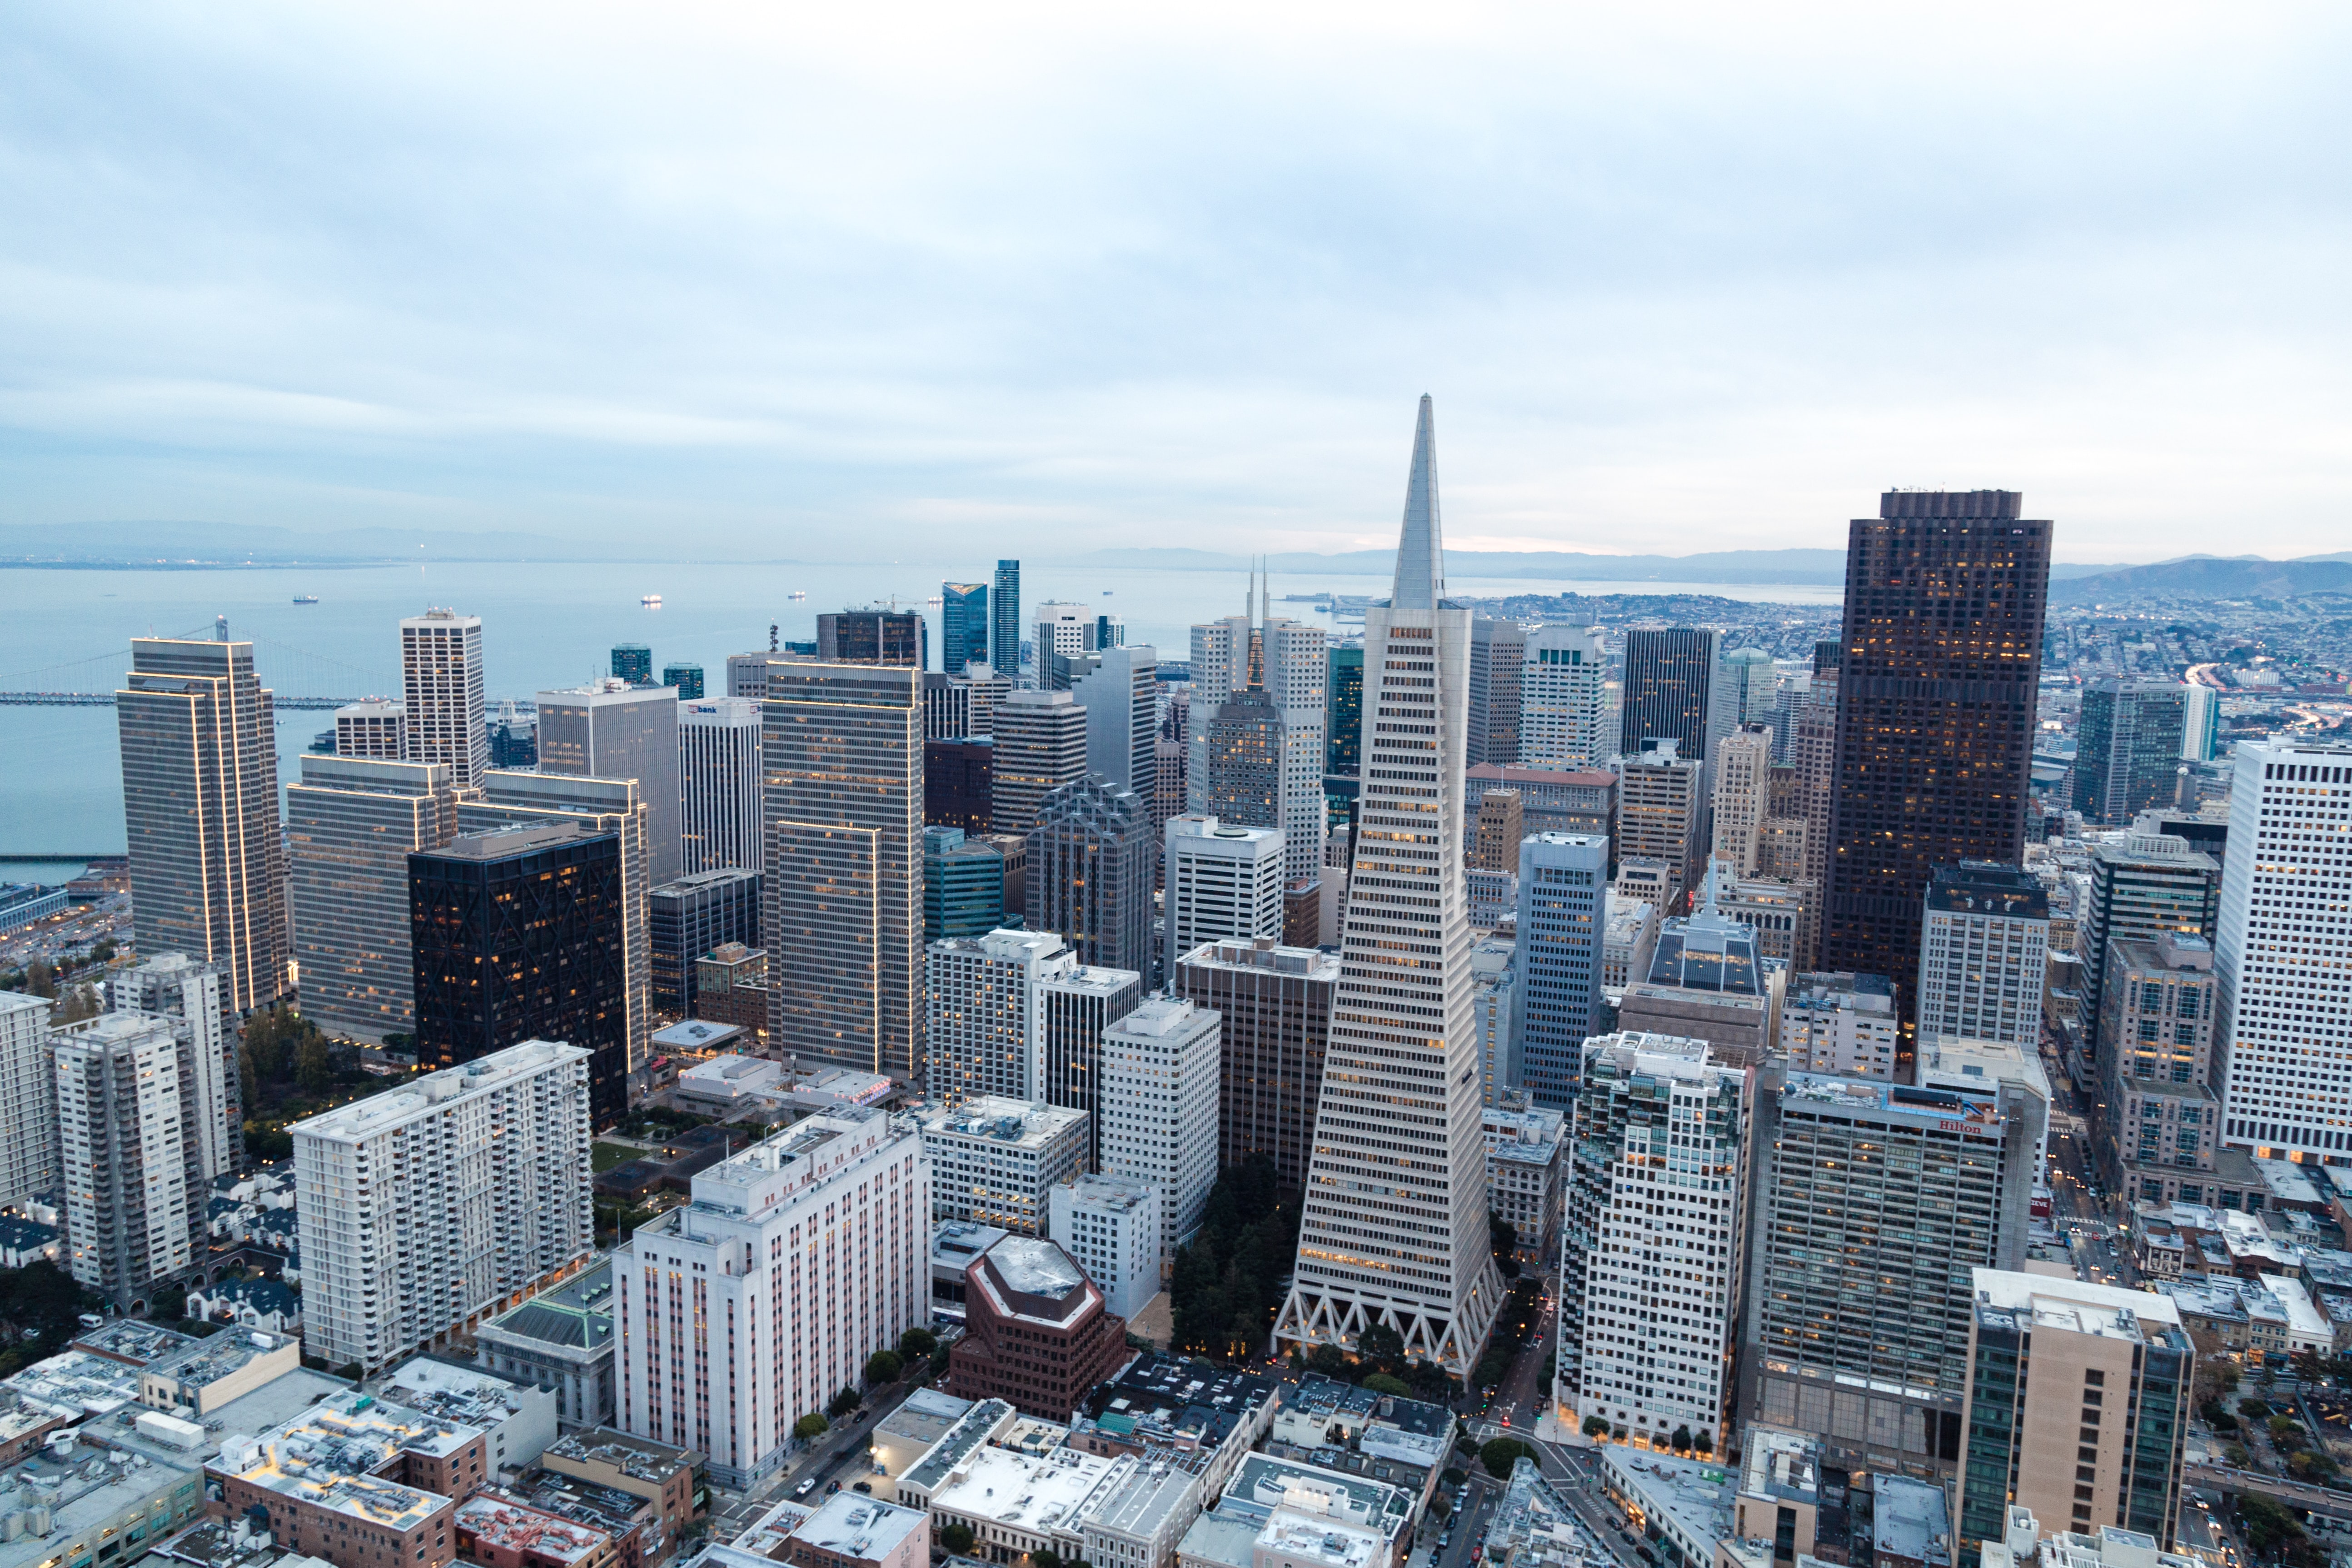 The skyline of San Francisco with the Transamerica Pyramid and other skyscrapers